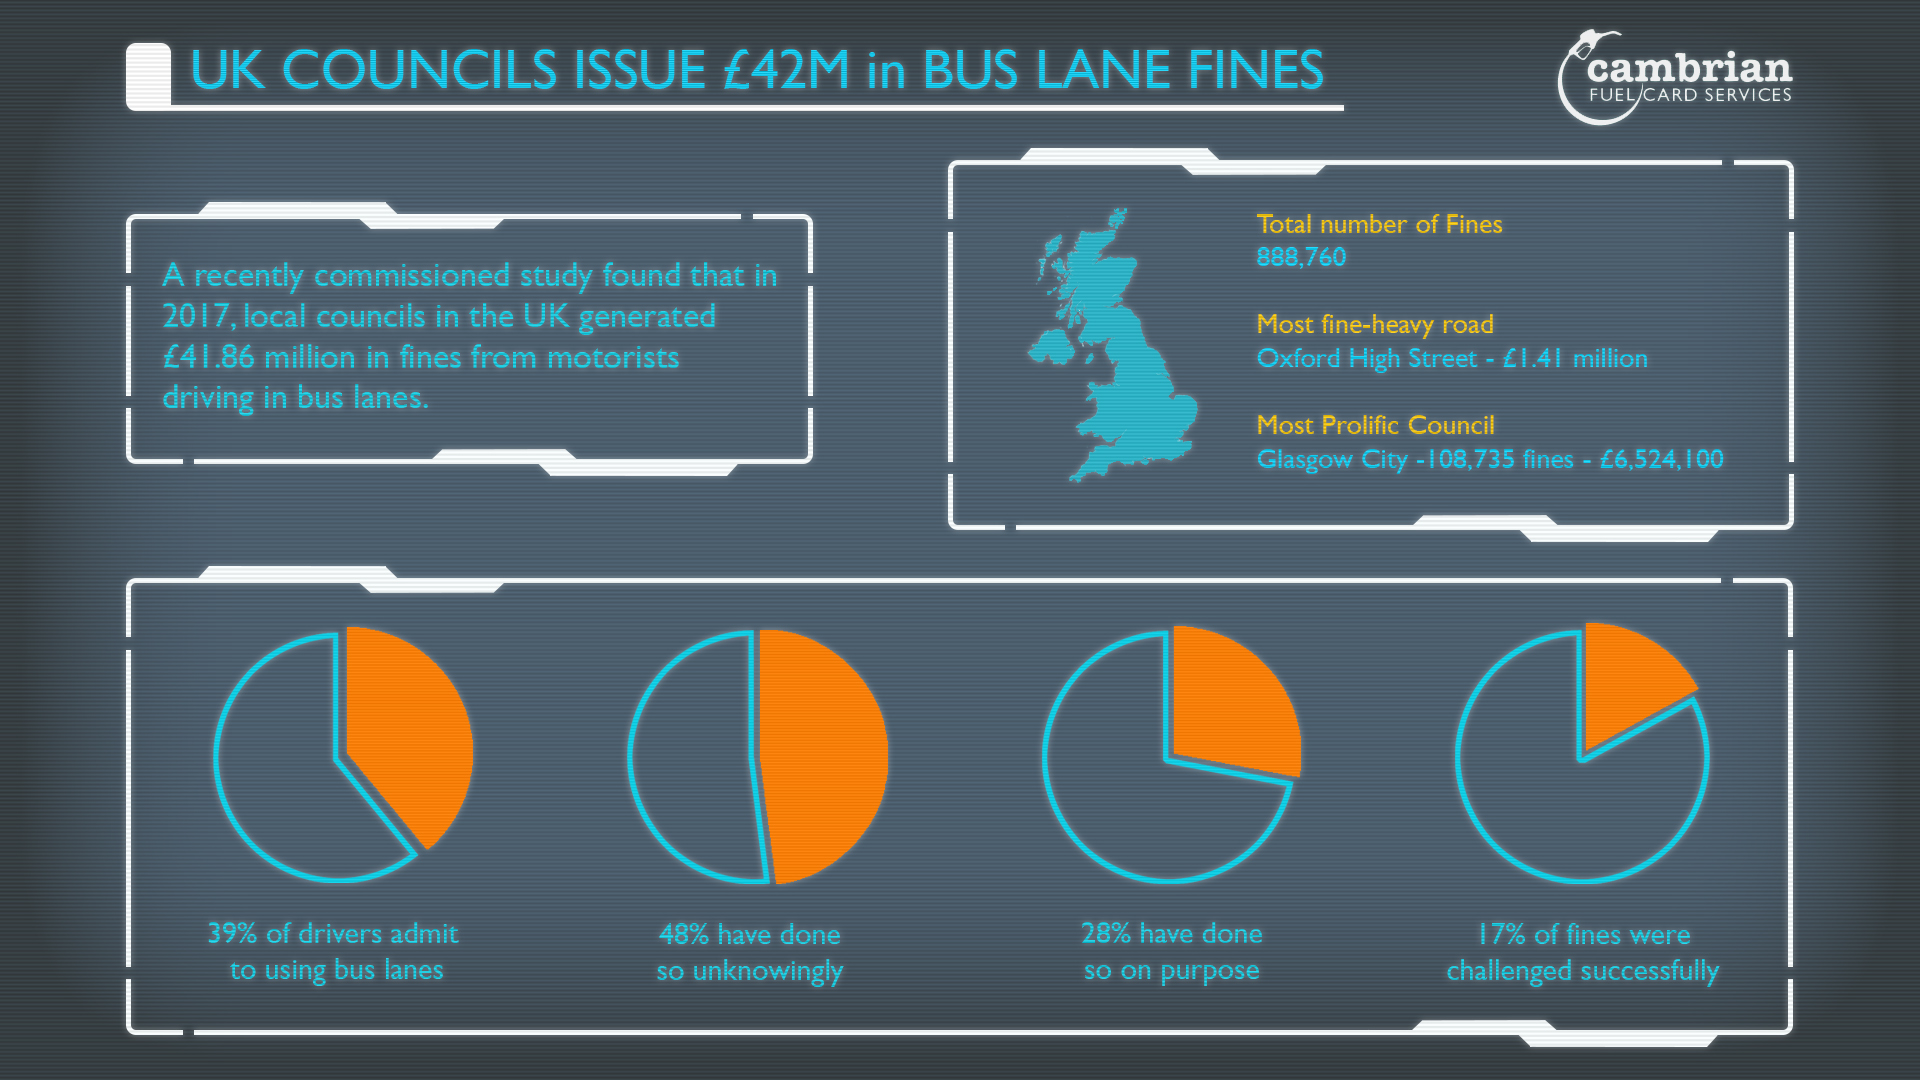 UK Councils Issue £42M in Bus Lane Fines - Infographic | Cambrian